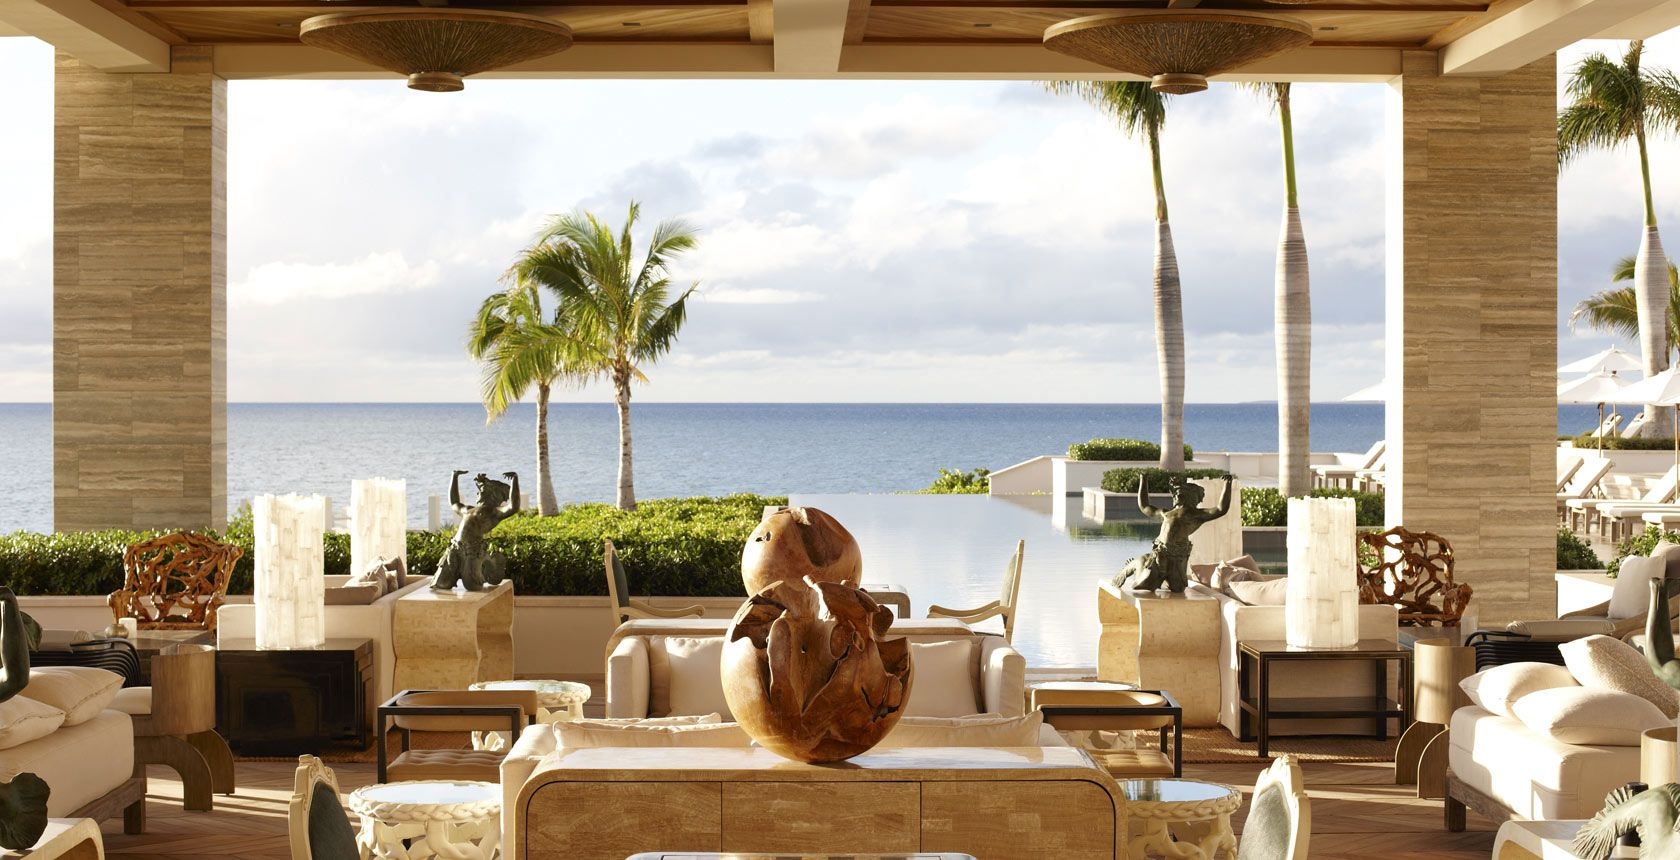 Caribbean beach resort anguilla luxury hotel viceroy anguilla great vibe for social couples